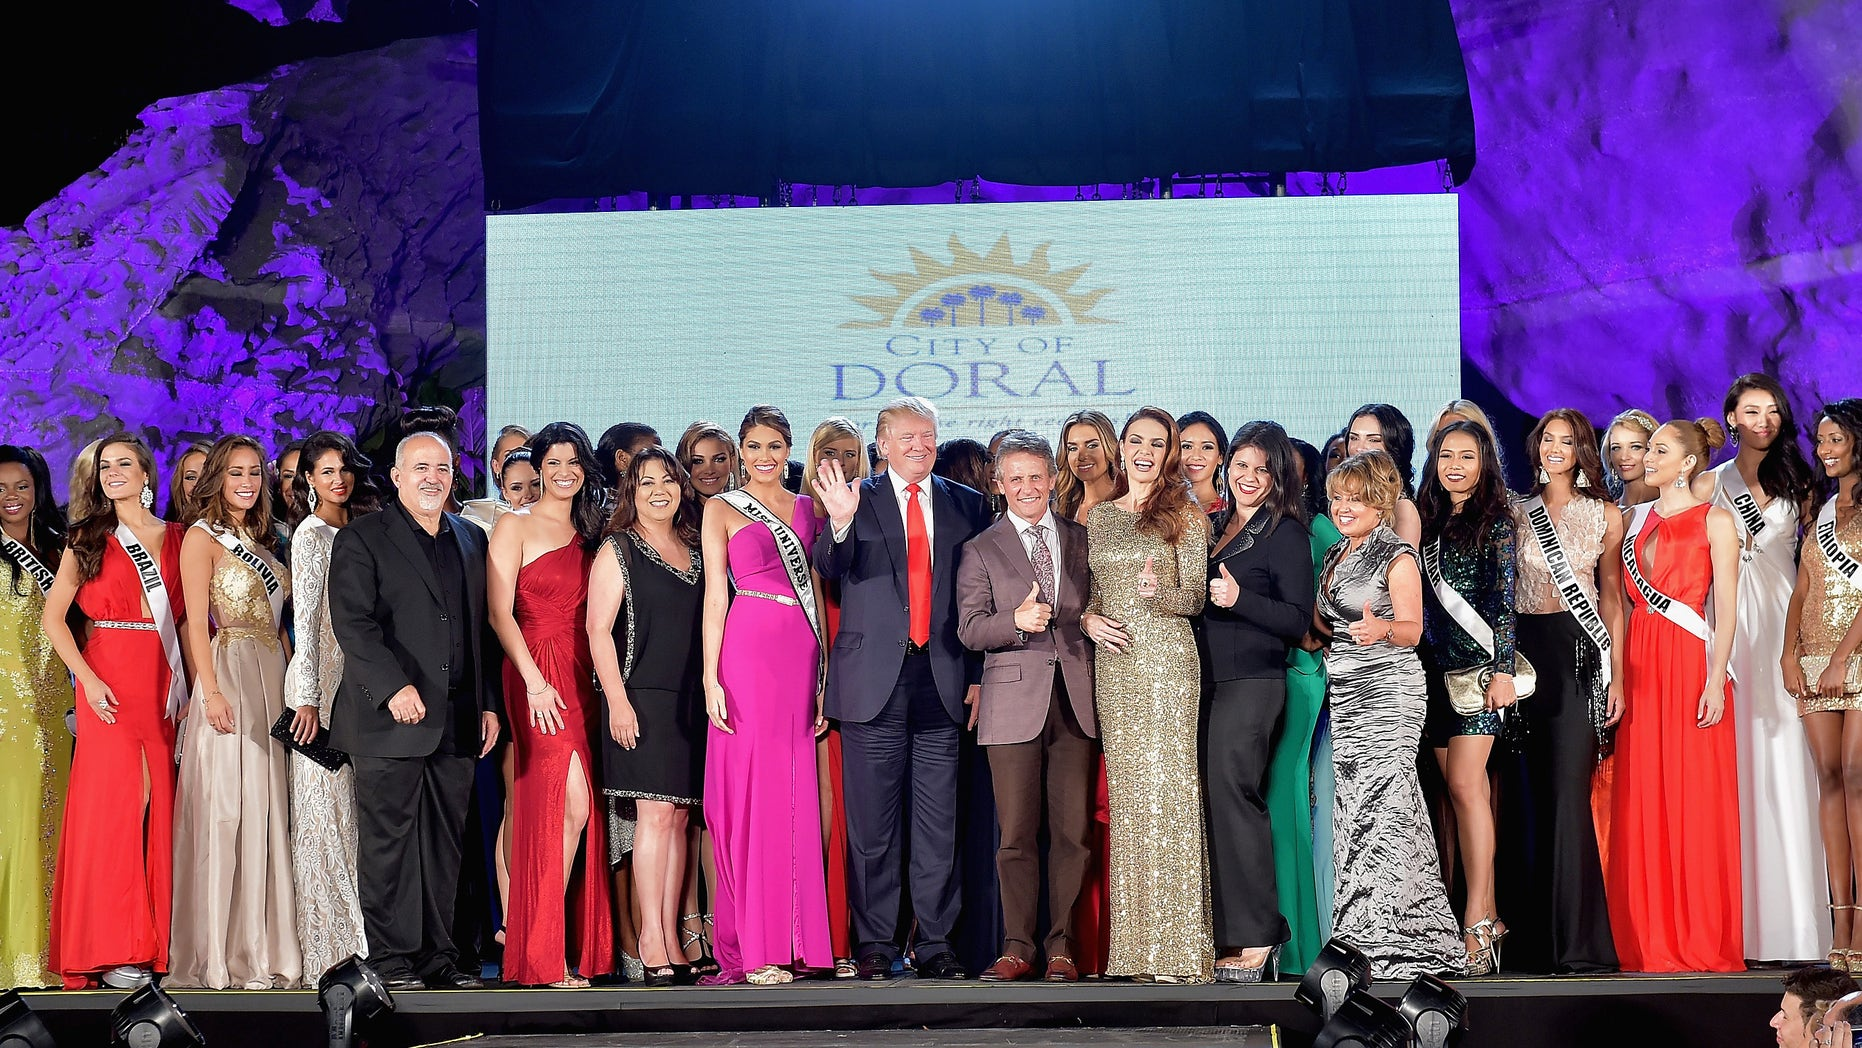 DORAL, FL - JANUARY 09:  Donald Trump attends Miss Universe Welcome Event and Reception at Downtown Doral Park on January 9, 2015 in Doral, Florida.  (Photo by Gustavo Caballero/Getty Images)